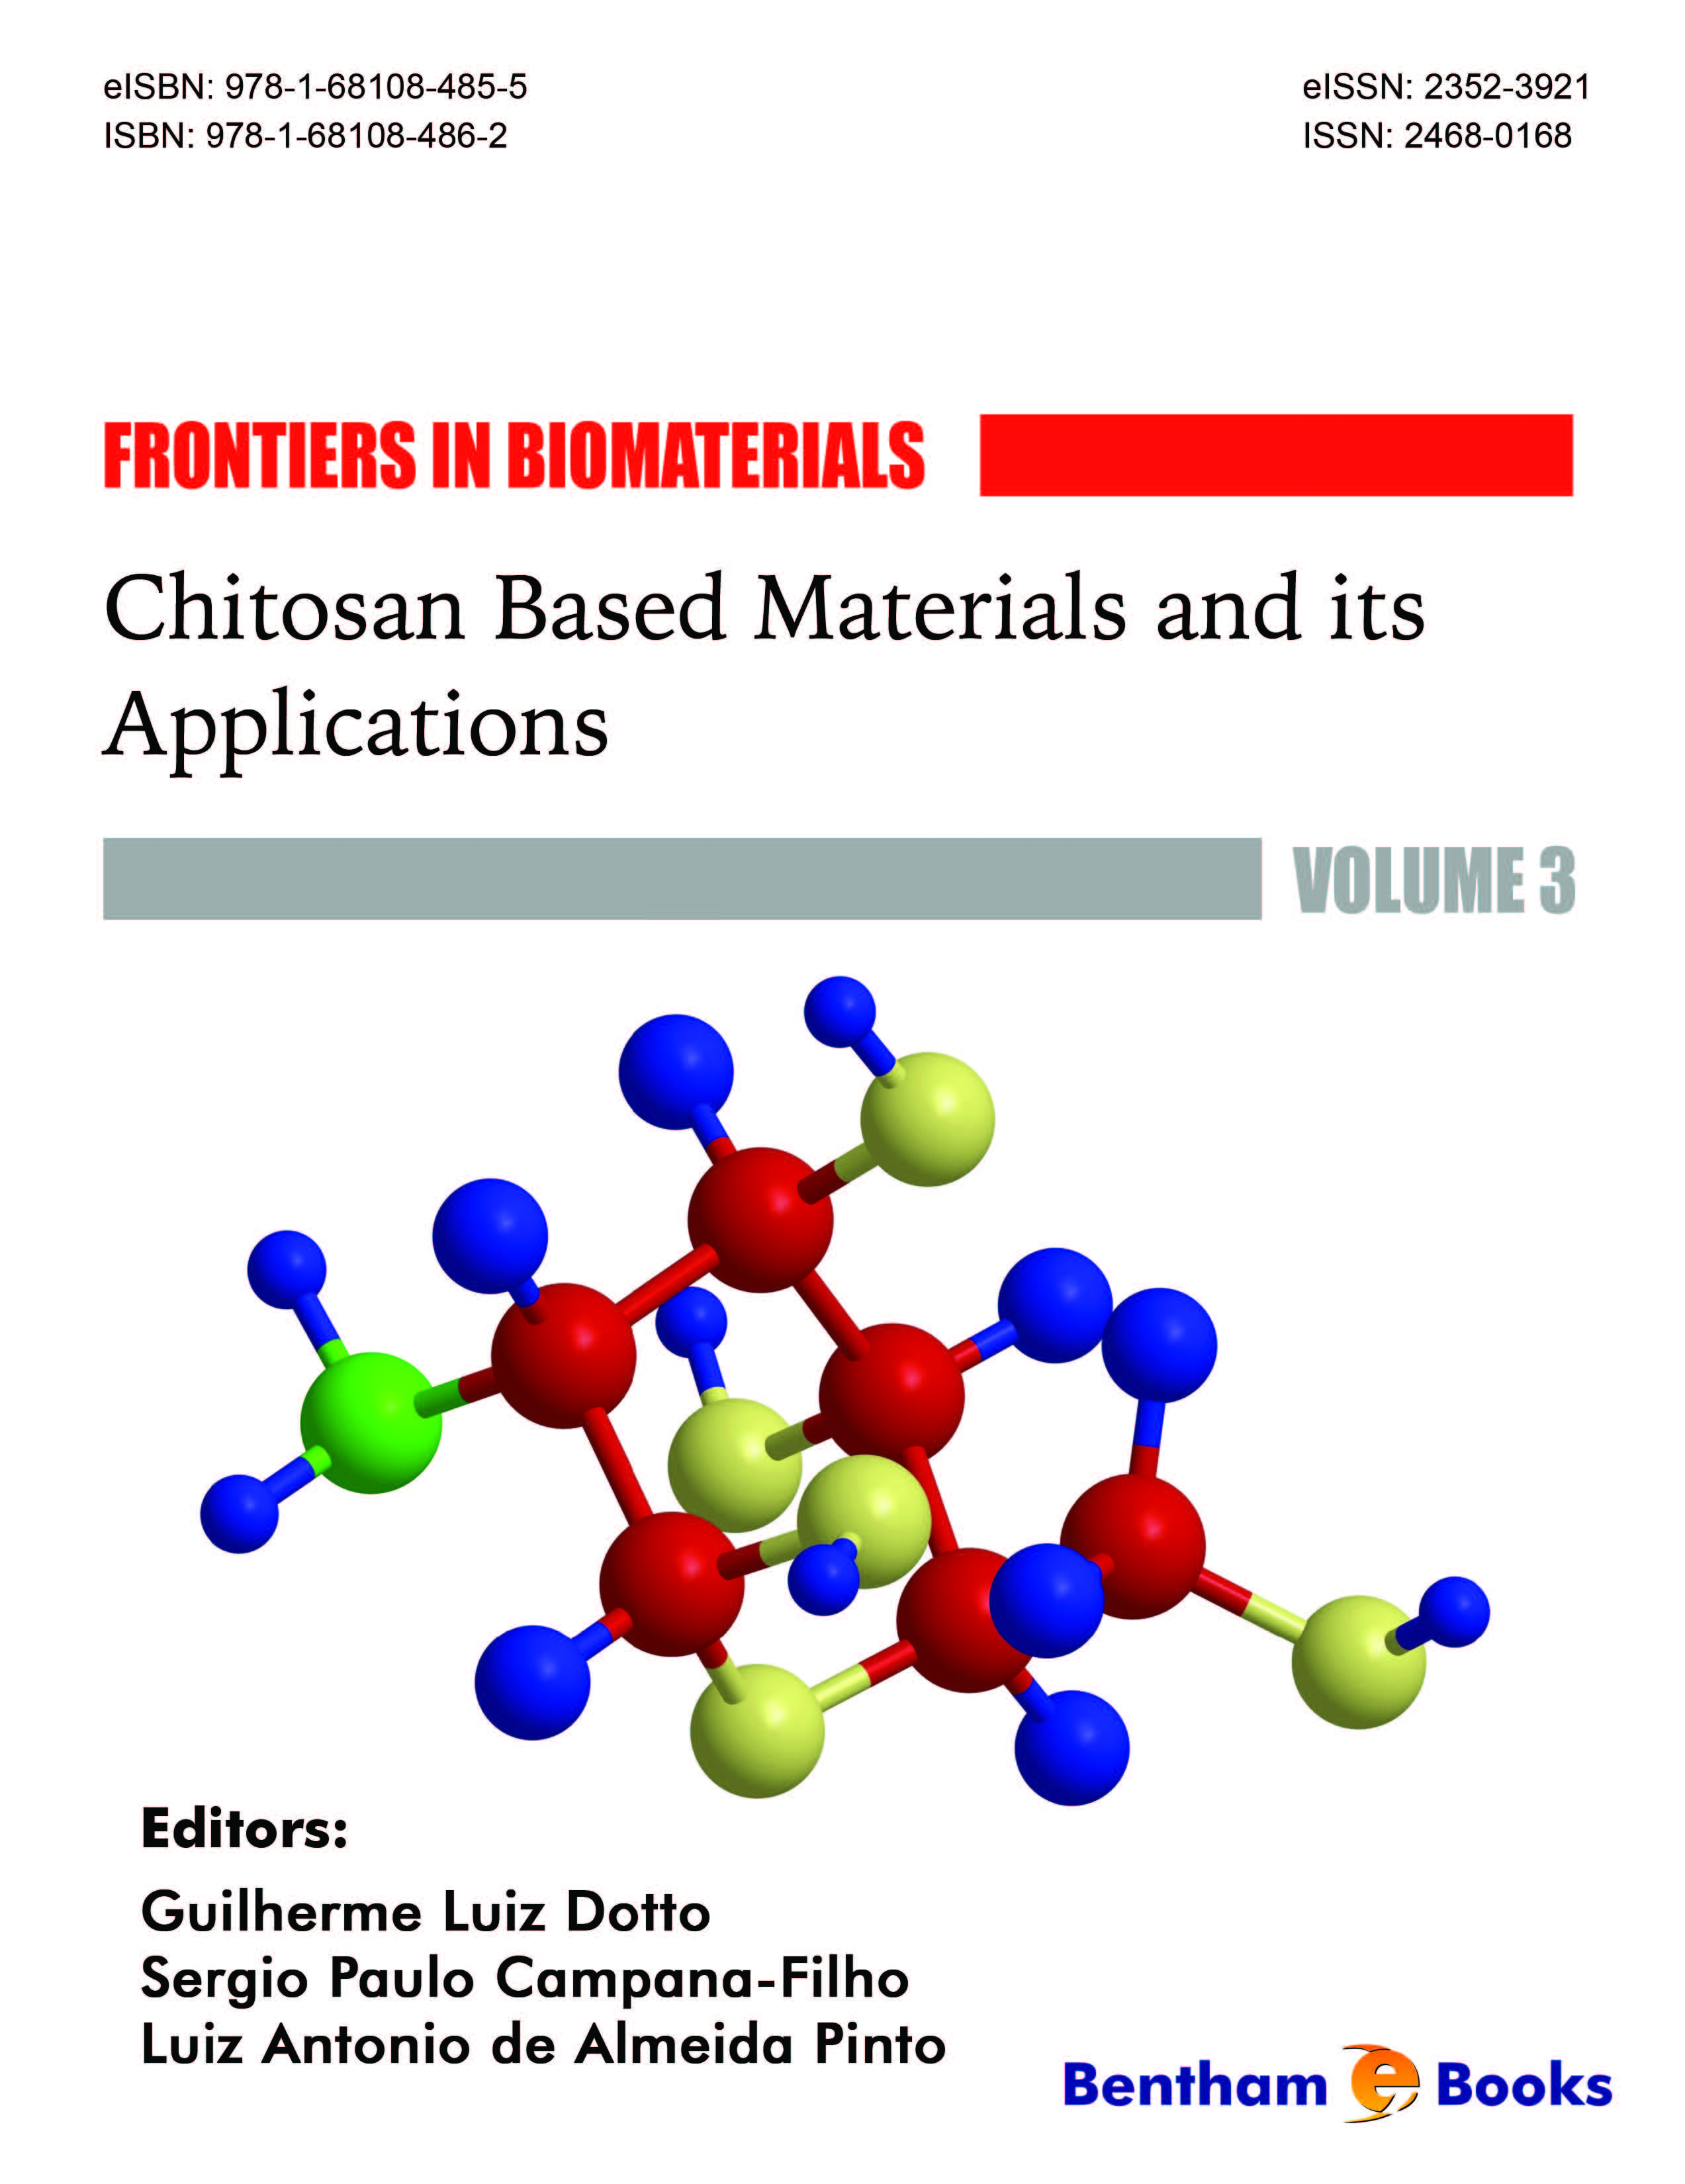 Chitosan Based Materials and its Applications